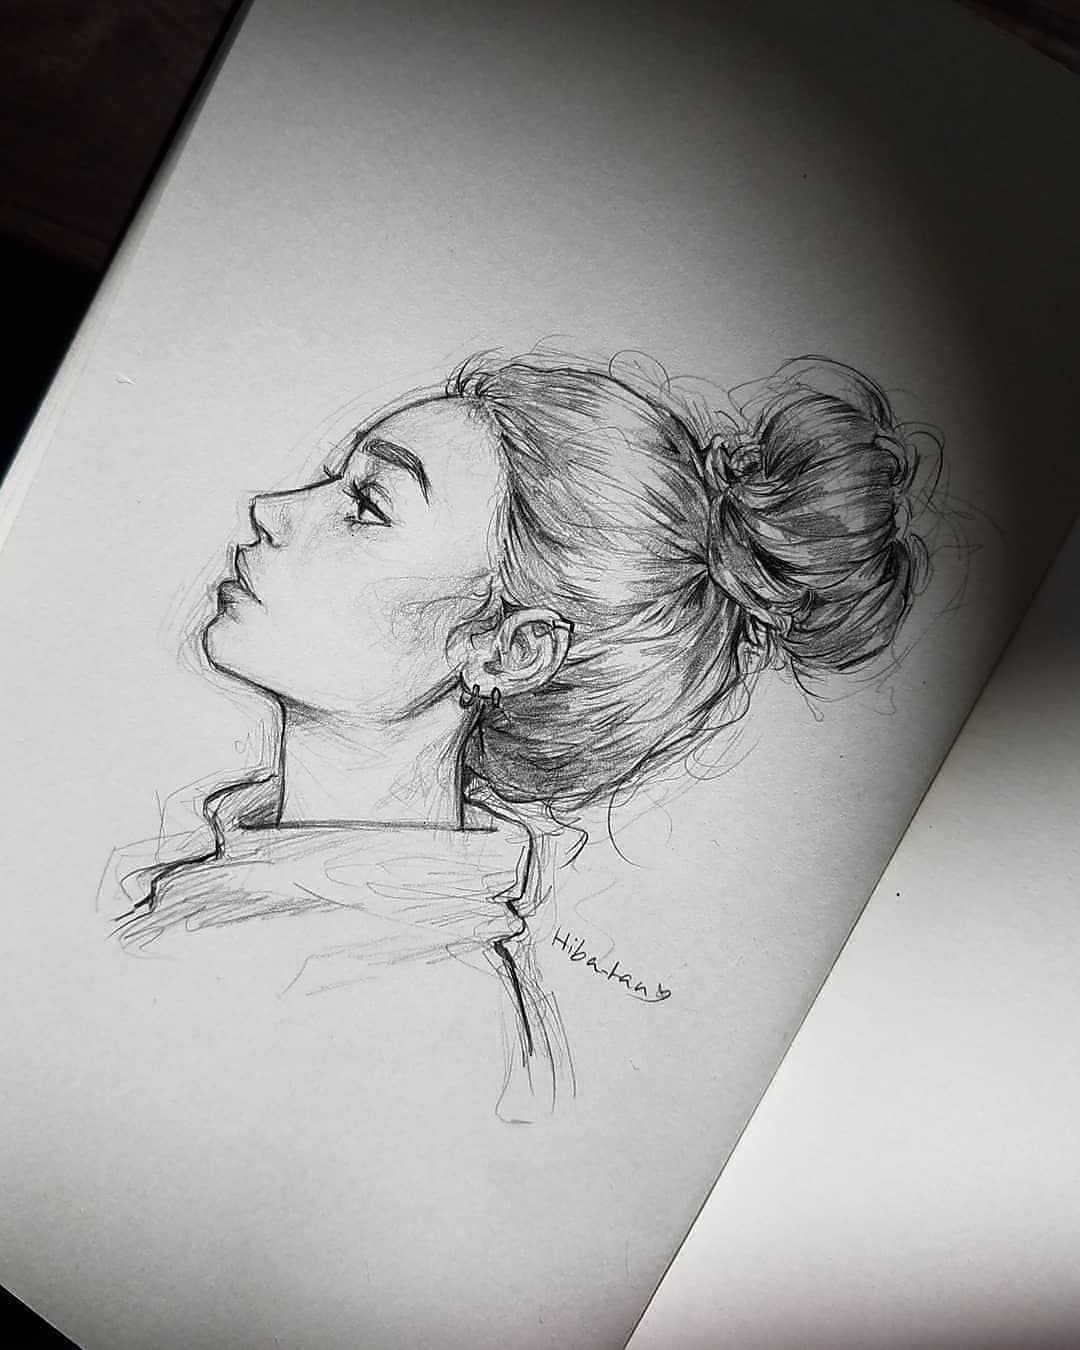 1 2 Or 3 Stunning Portraits By Hiba Tan What Do You Think